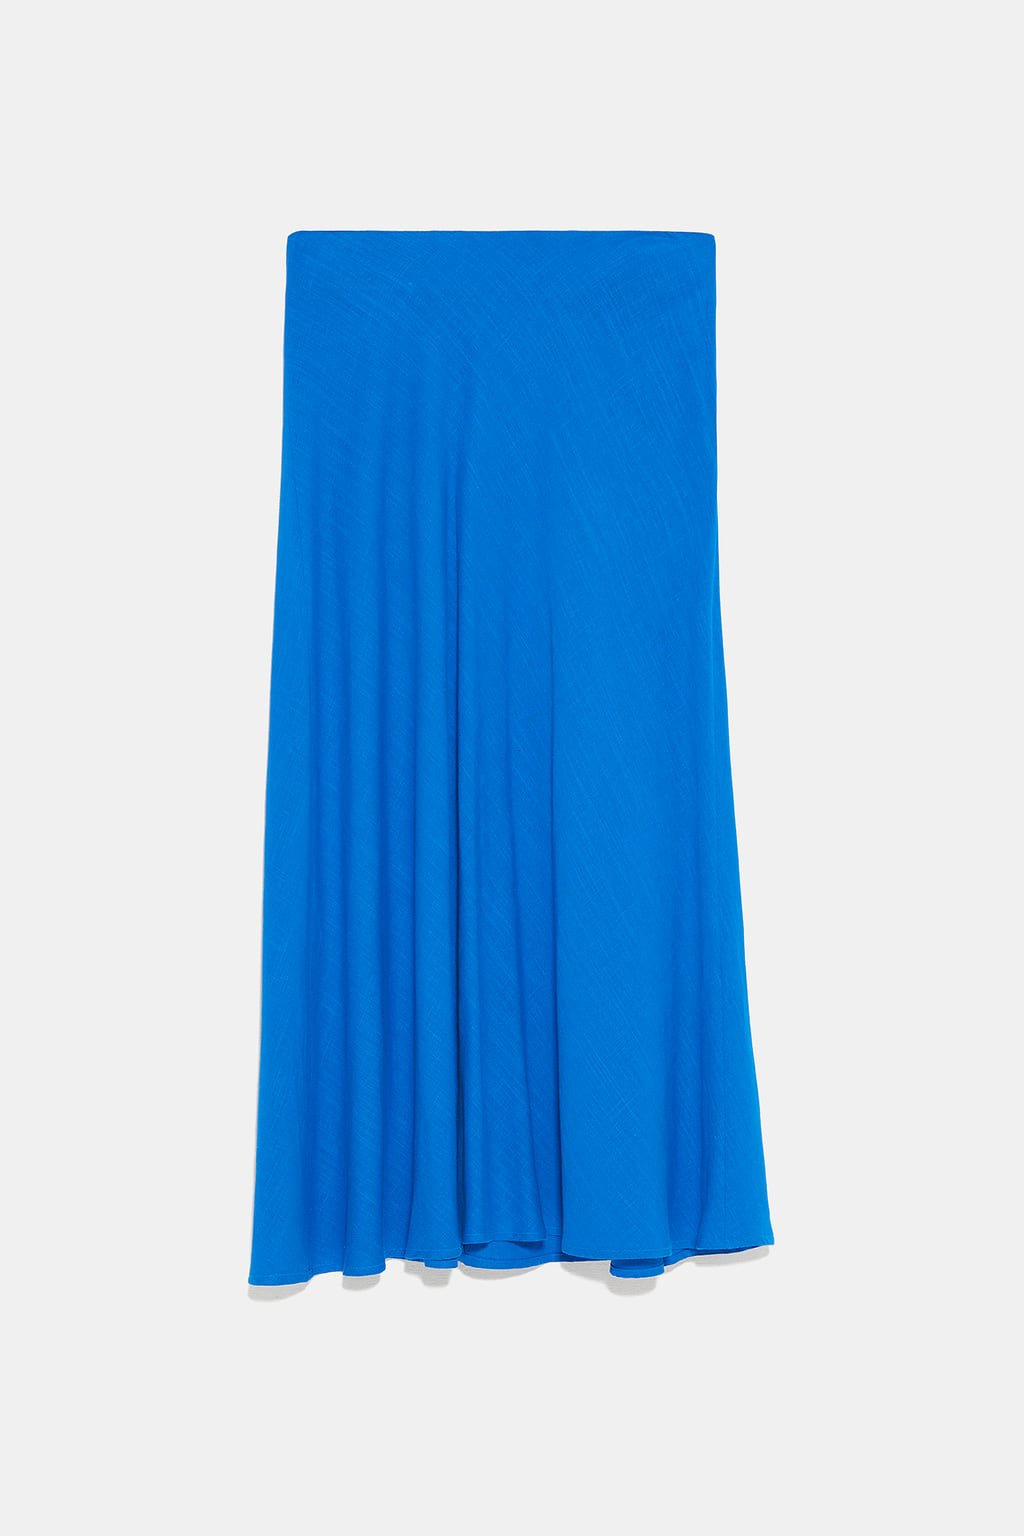 RUSTIC SKIRT - View All-SKIRTS-WOMAN   ZARA United States blue